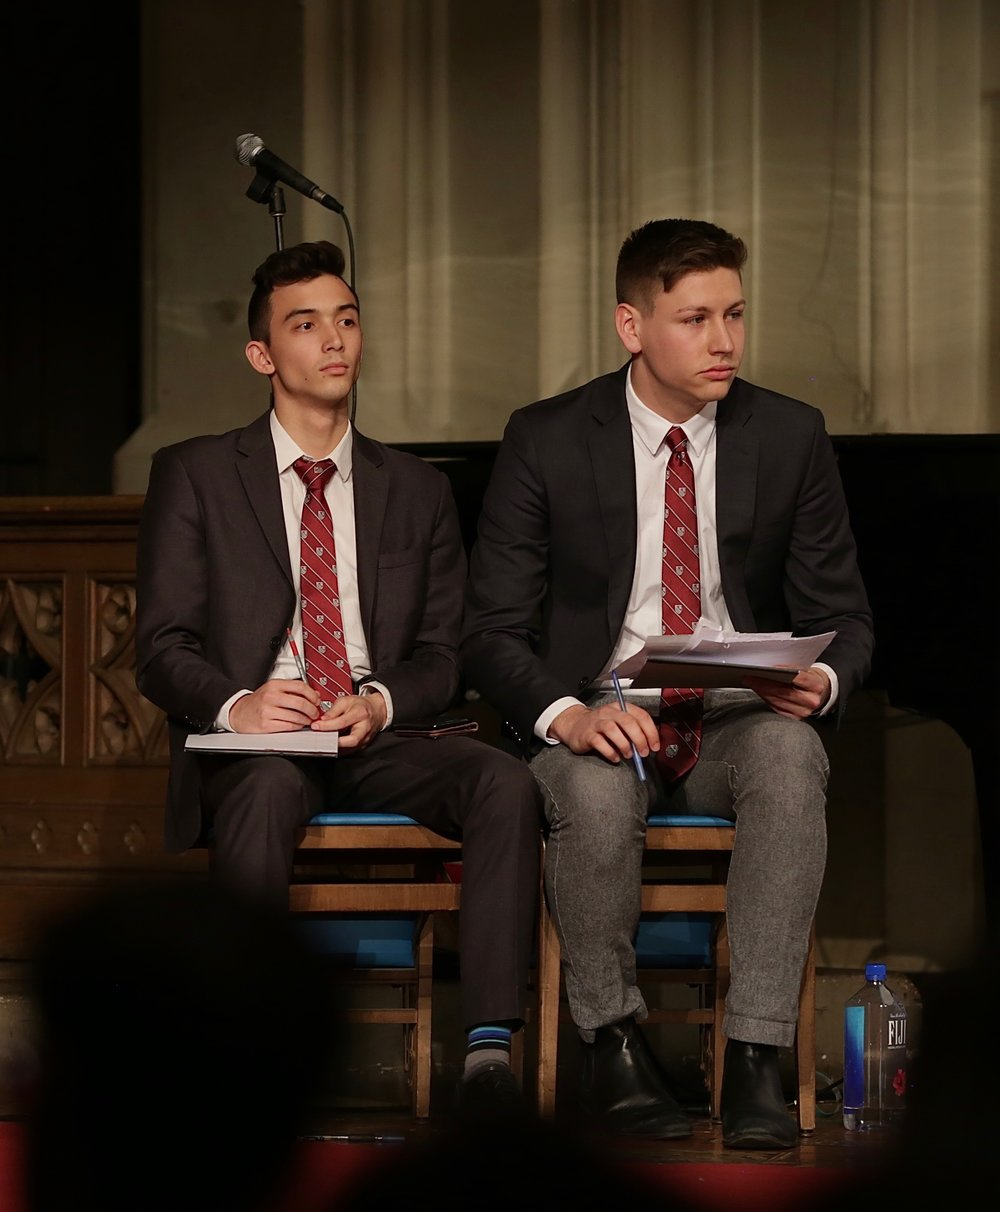 Kyle Kendrick and Jared Neikirk representing the House of C.S Lewis.    Photo Credit to Gabriela Kressley